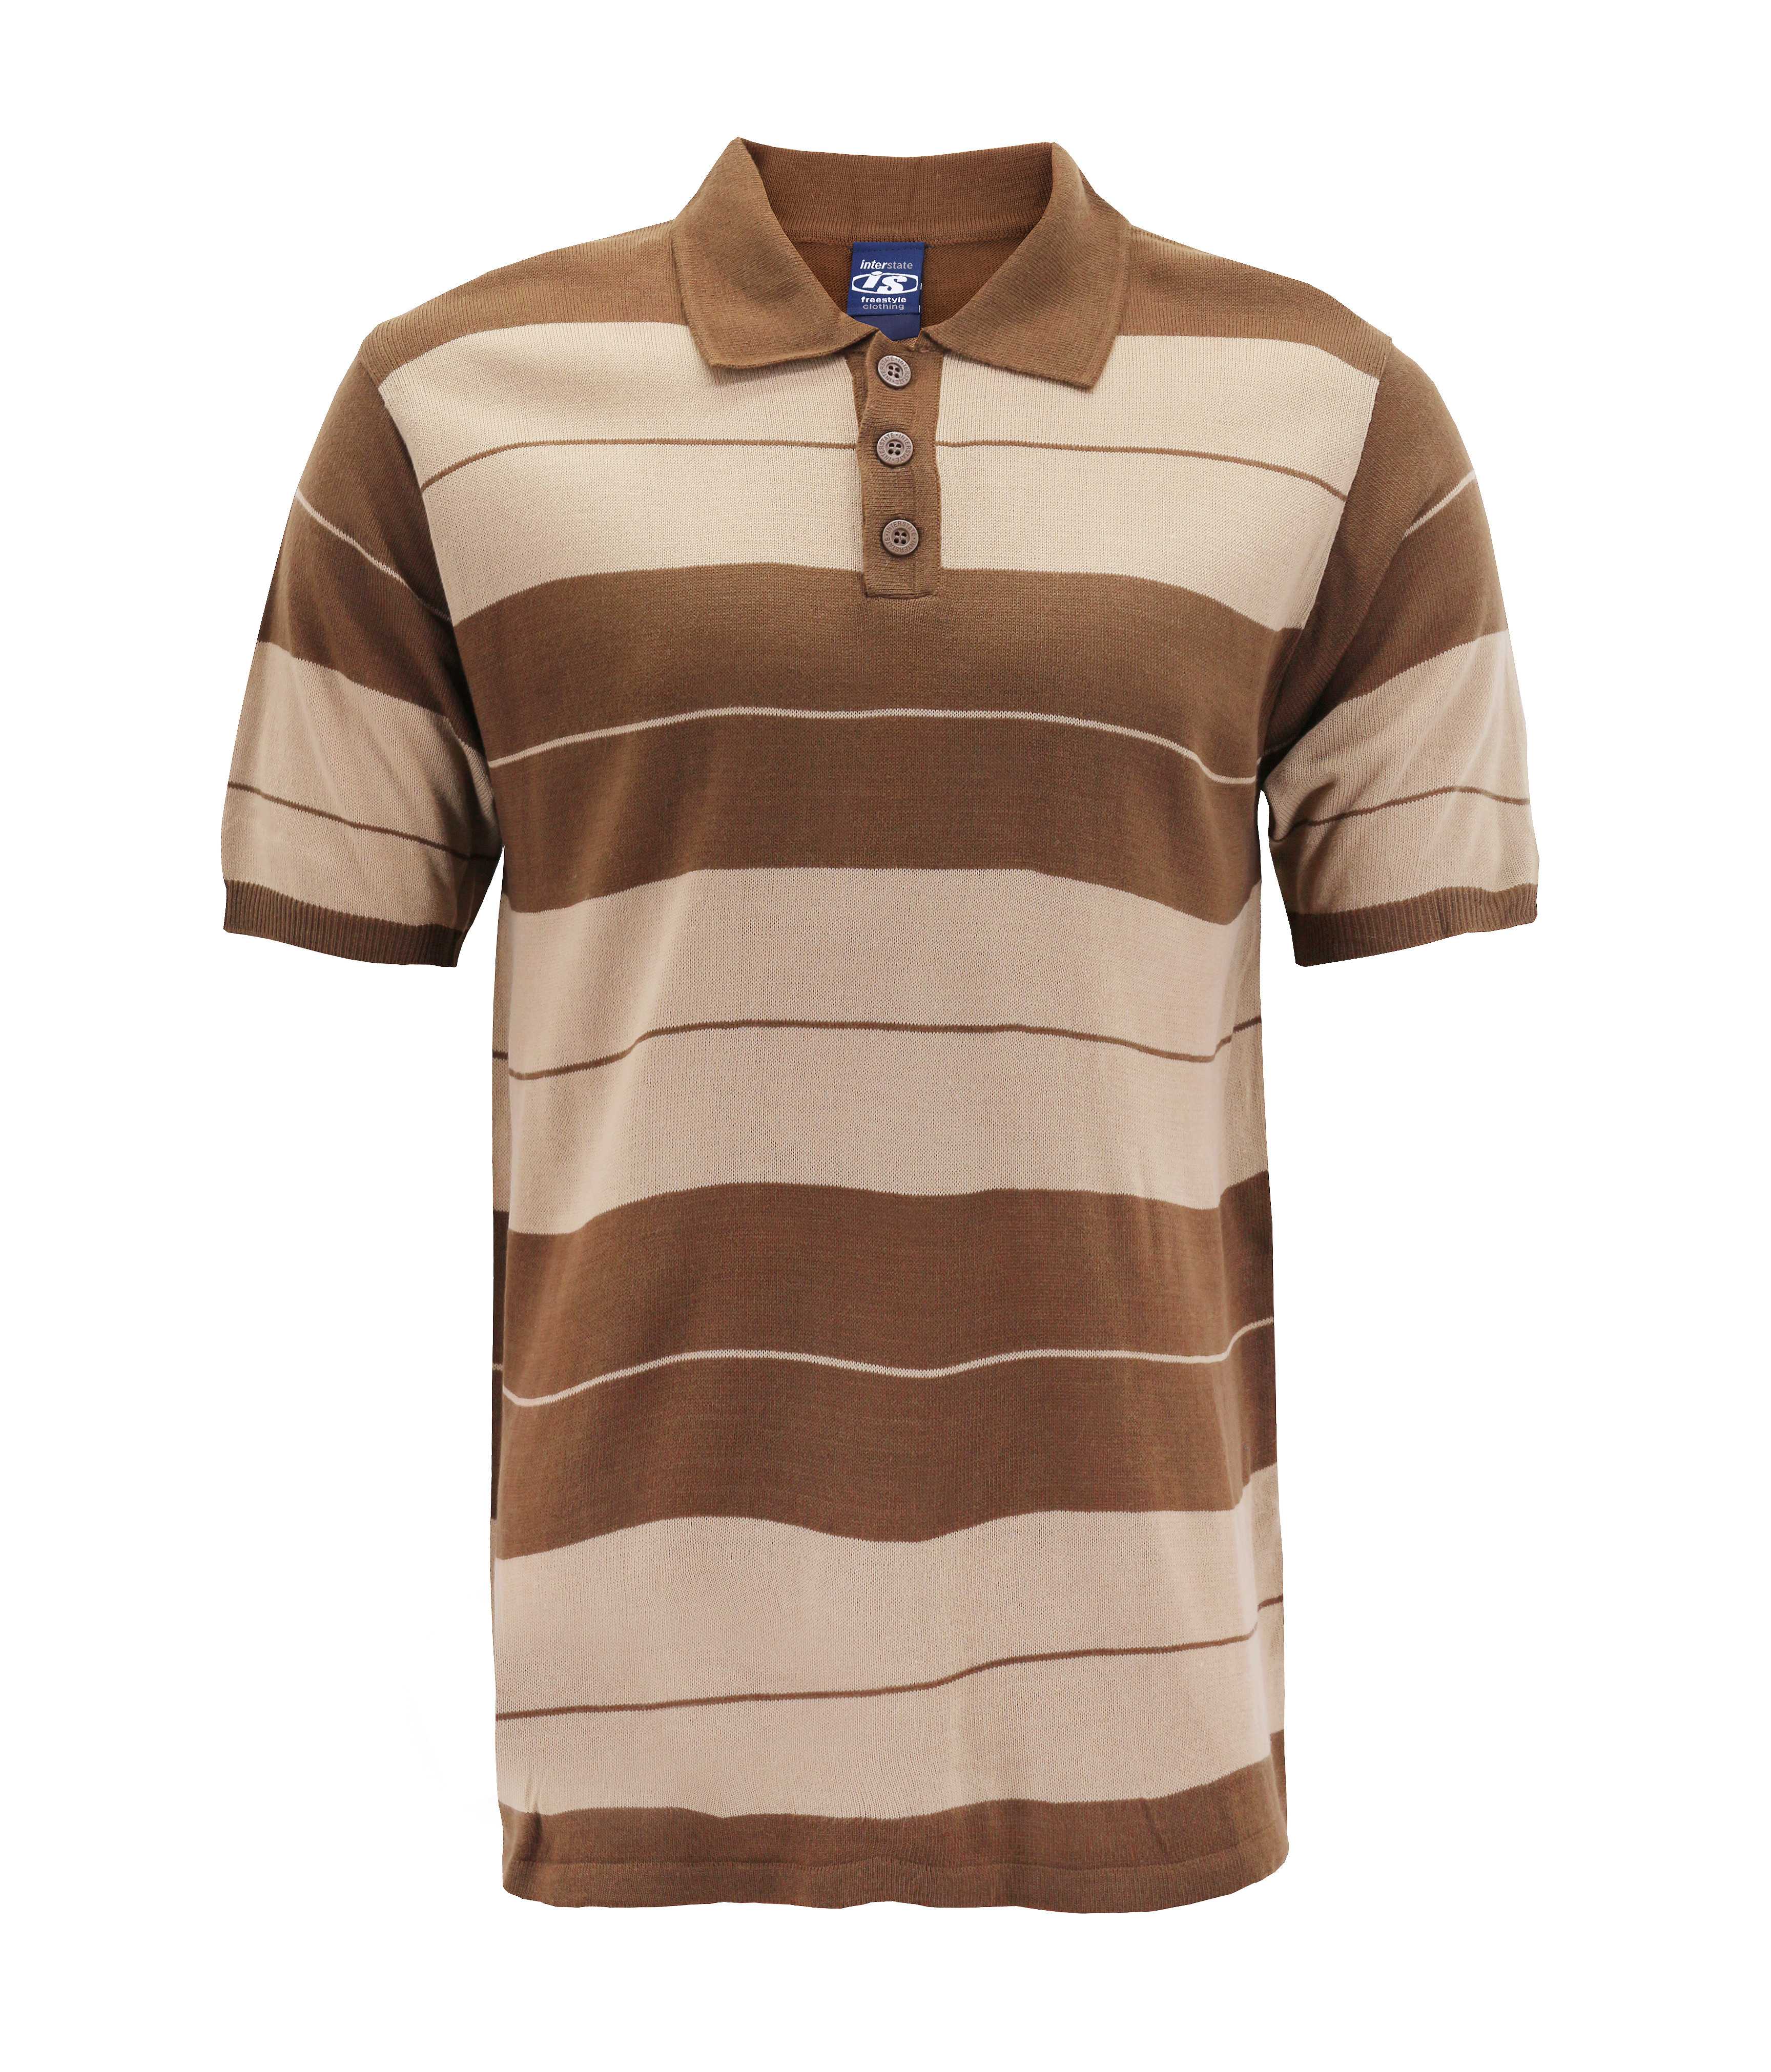 Men's Knitted Charlie Brown Striped Ribbed Short Sleeve ...